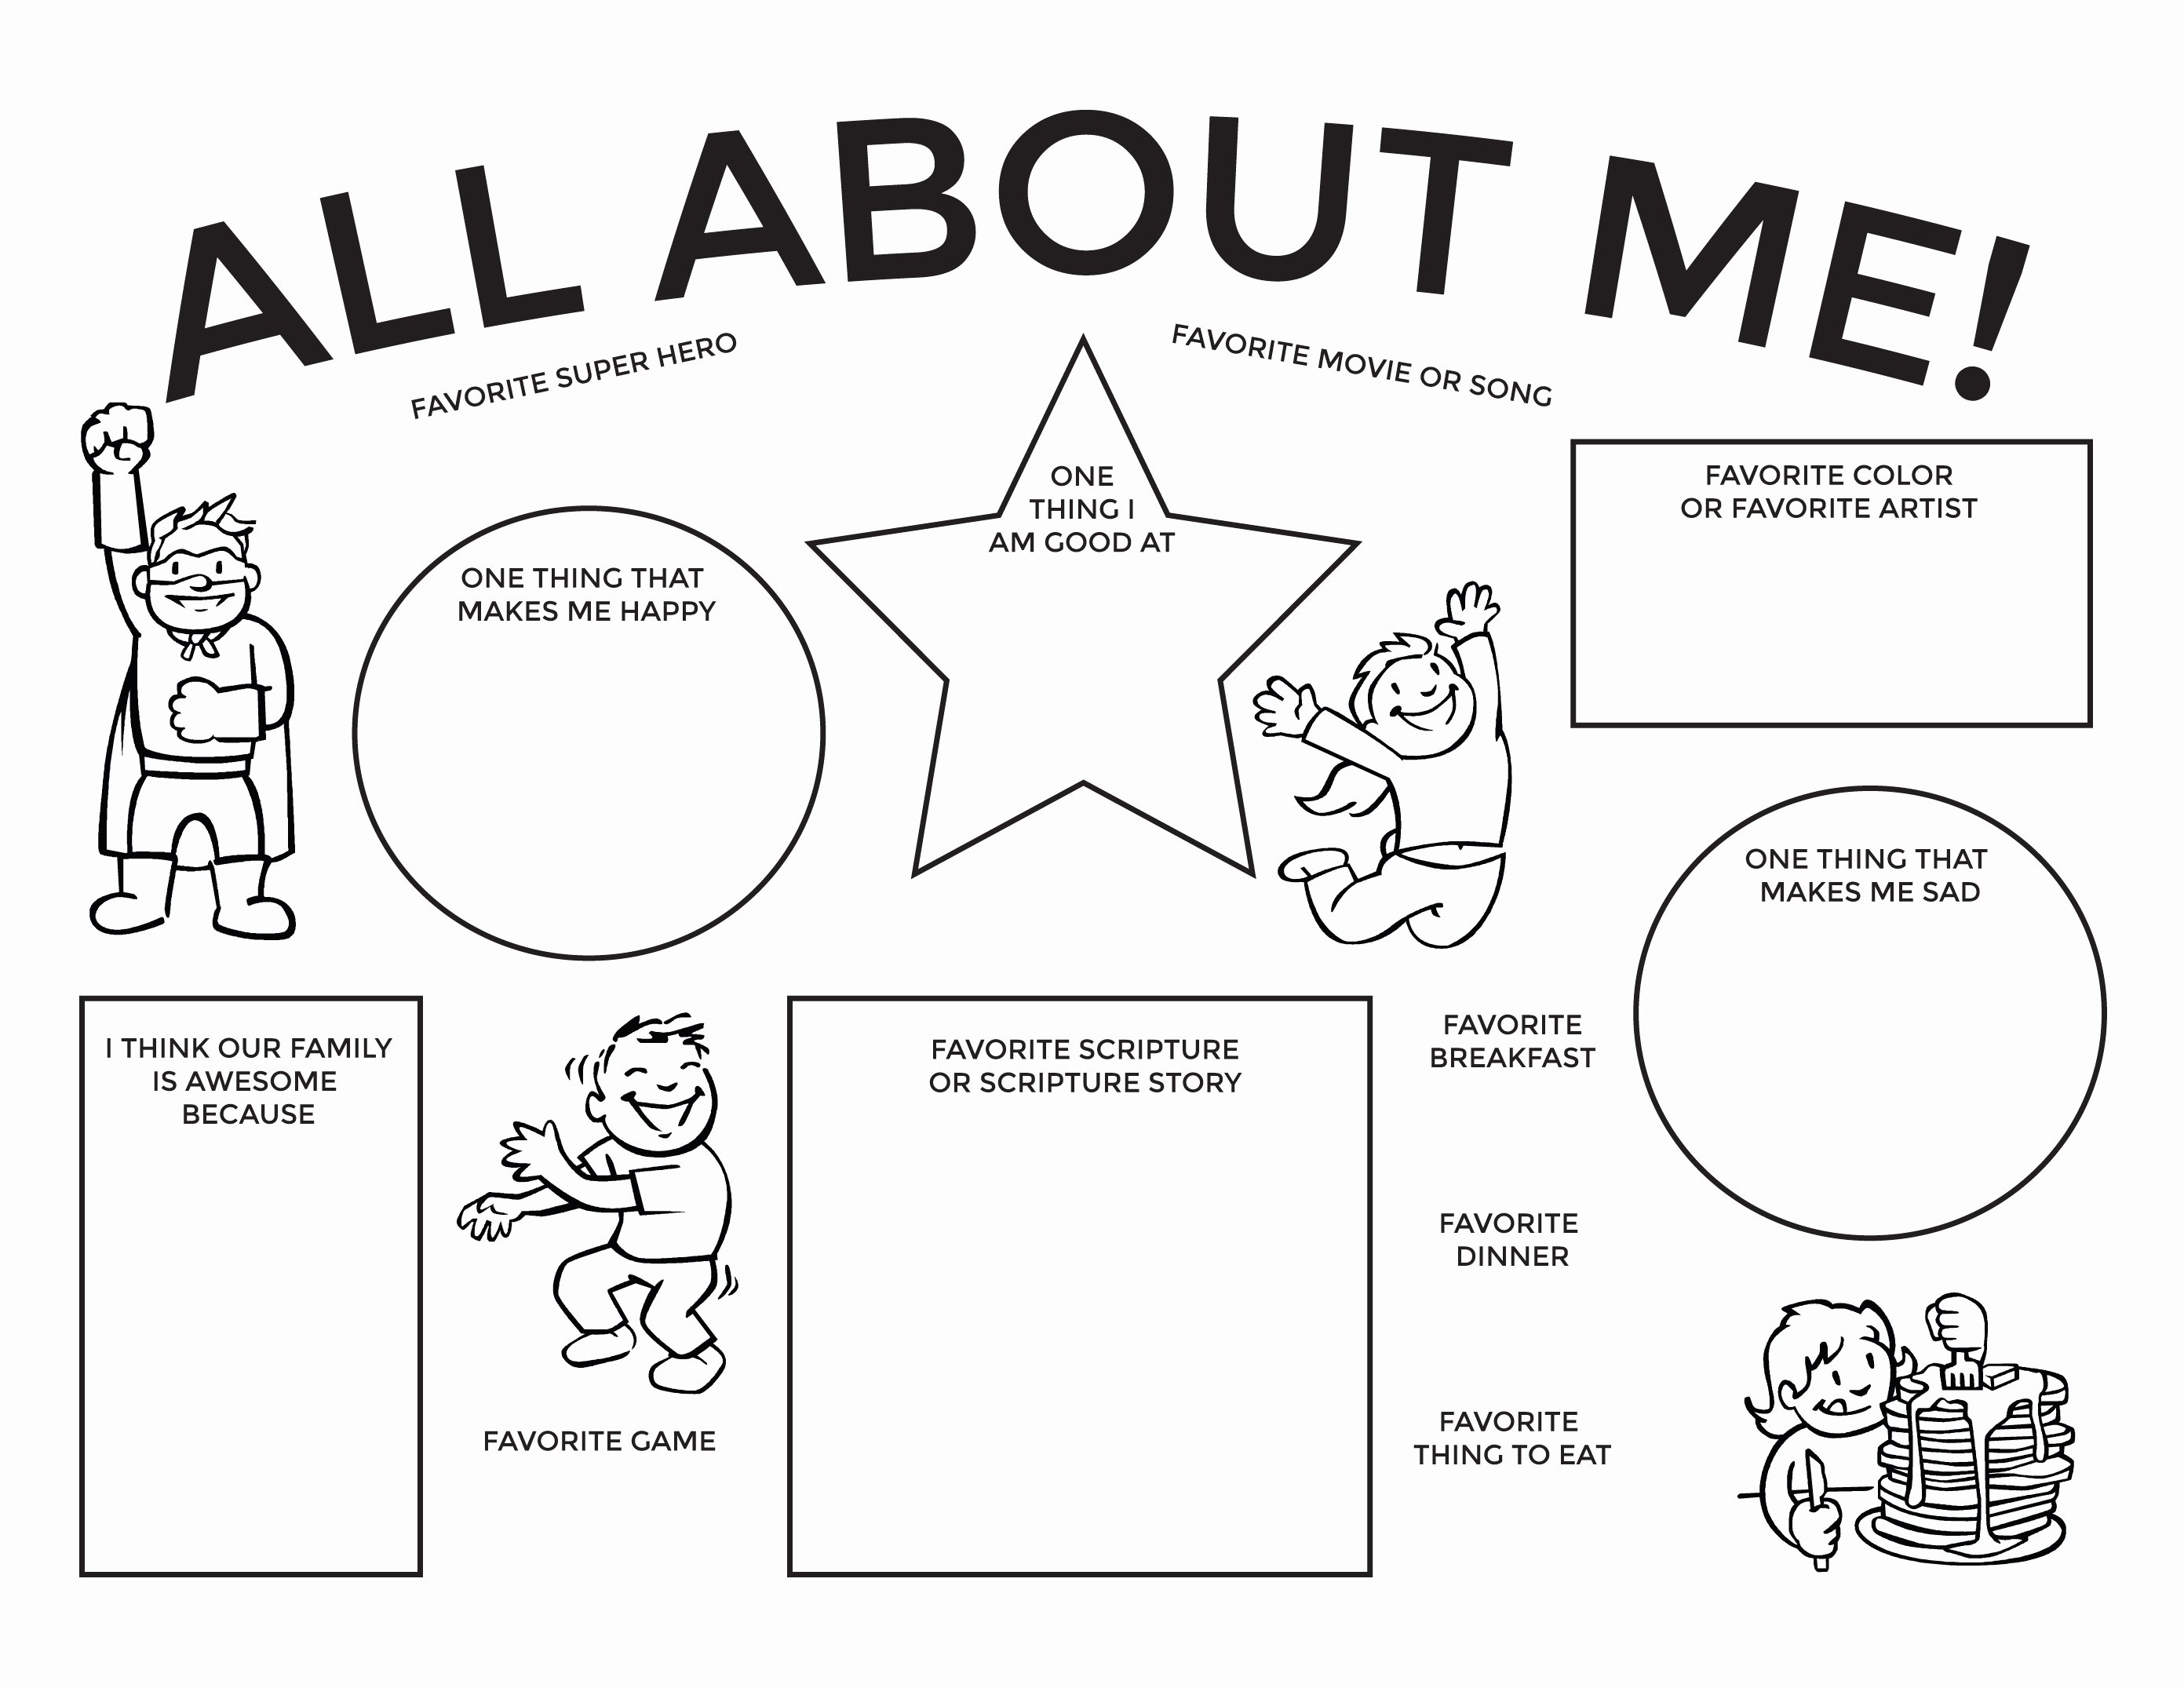 All About Me Worksheet Pdf Unique July 2015